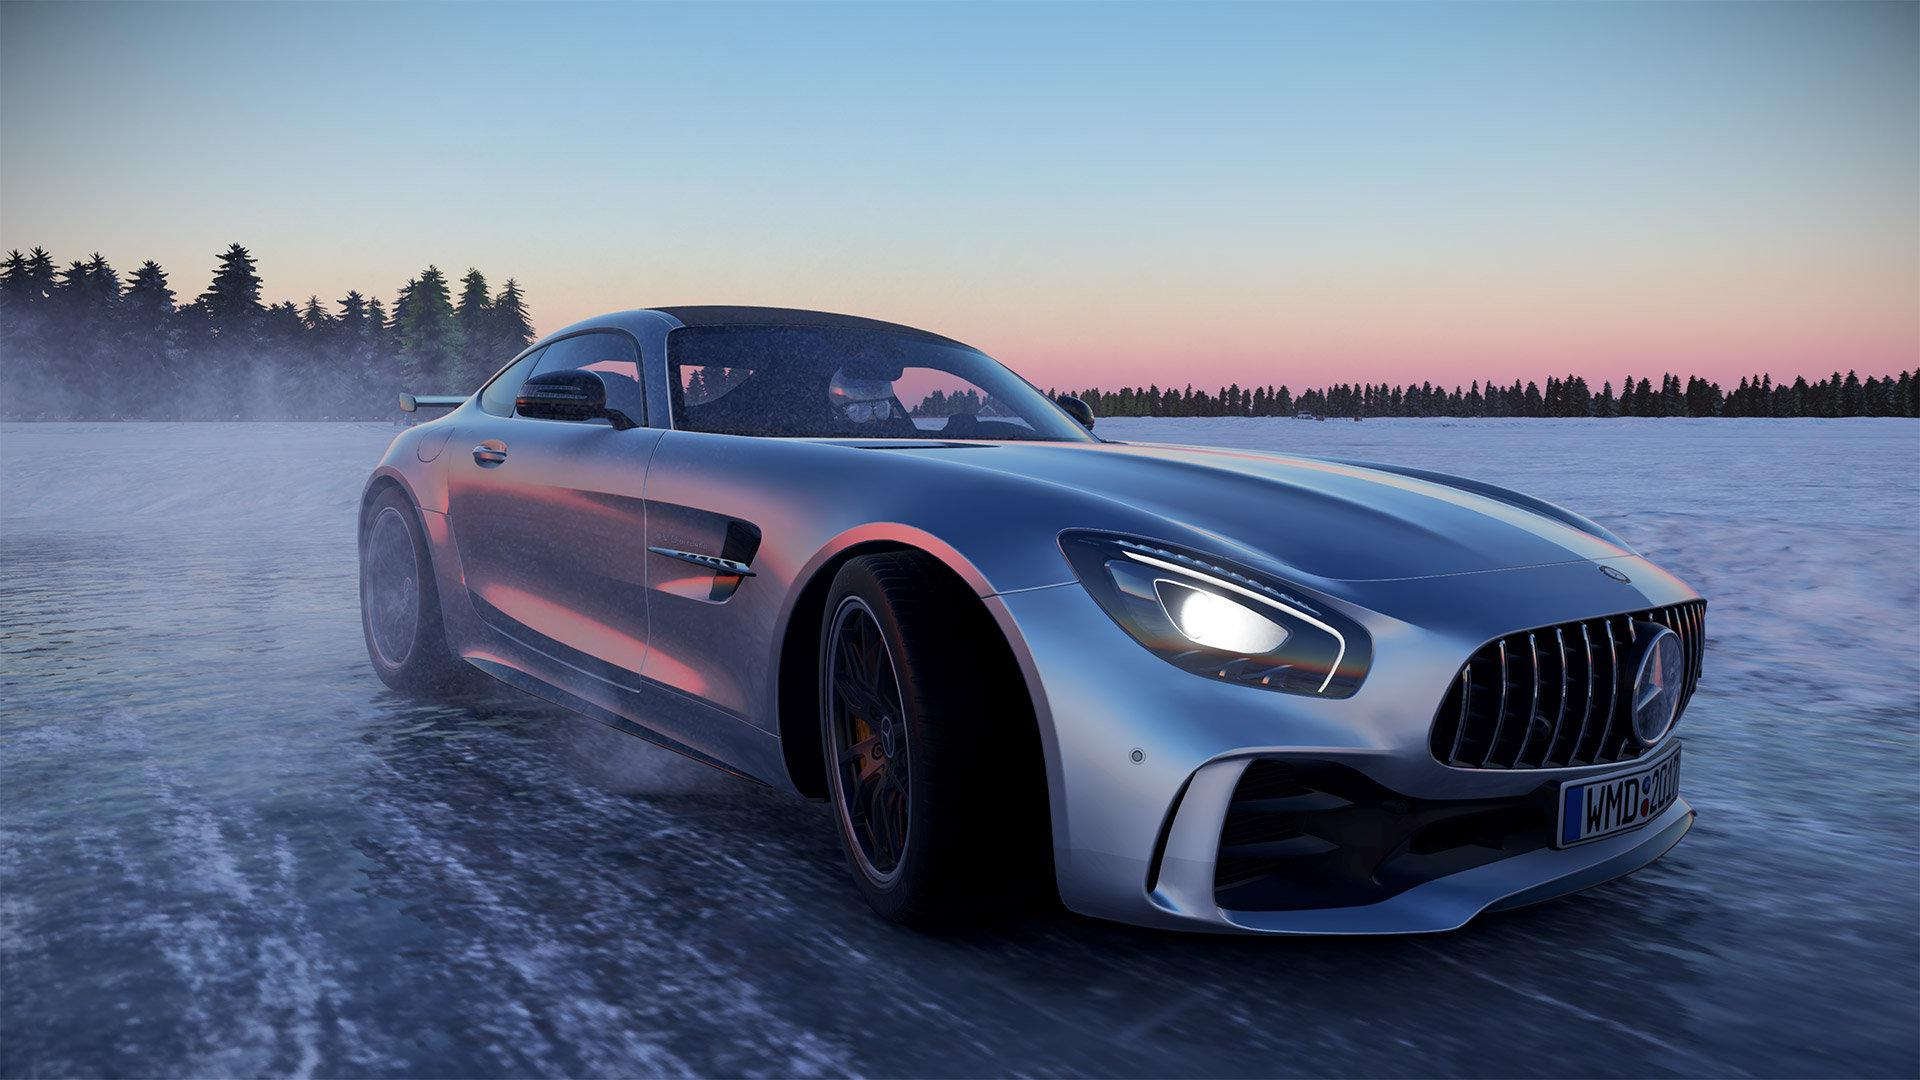 More than 180 cars have been painstakingly recreated in the game, which arrives on September 22